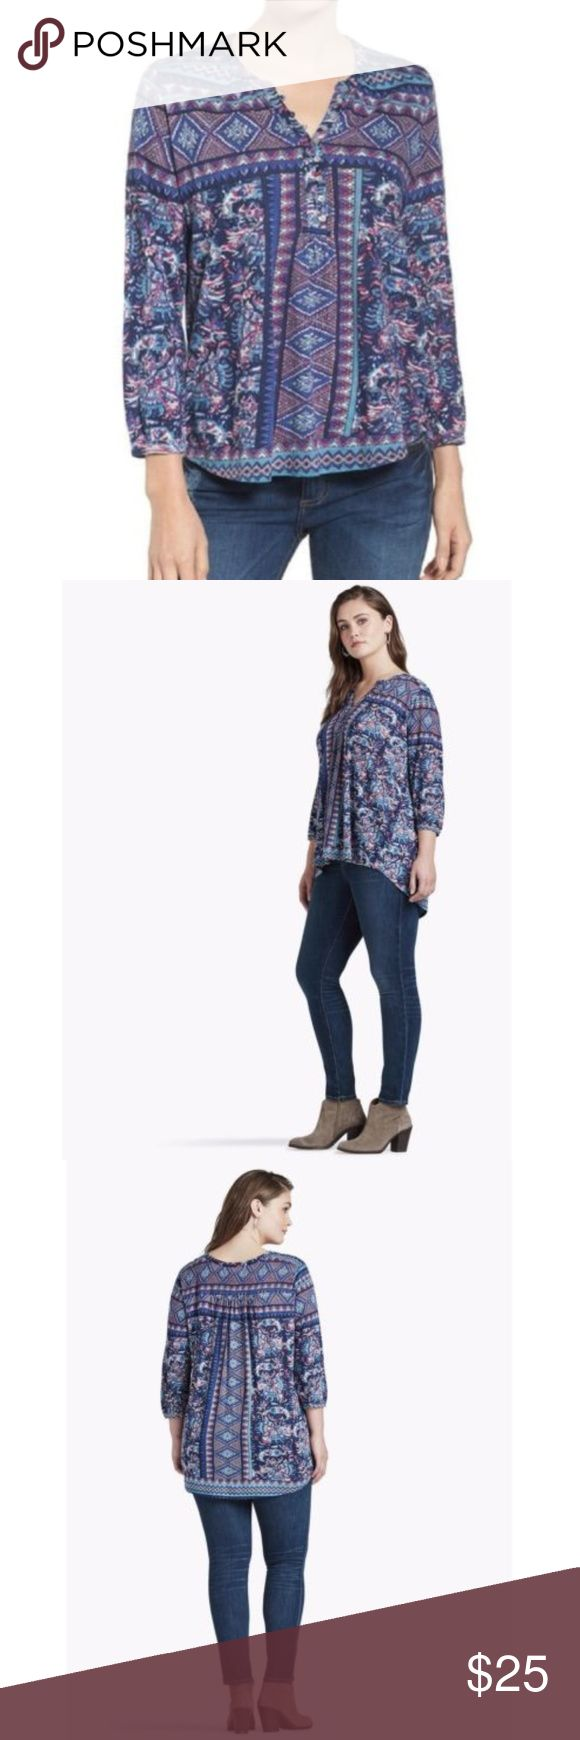 Lucky Brand Diamond Aztec Blouse XS Top is new with tags. navy and pink printed. Measurements taken with item lying flat in inches. Chest: 16 Waist: 20 Sleeve: 19 Length: 24 Material: 66% cotton 28% viscose 6% linen Style Number: 7W62384   M28-T218 Lucky Brand Tops Blouses